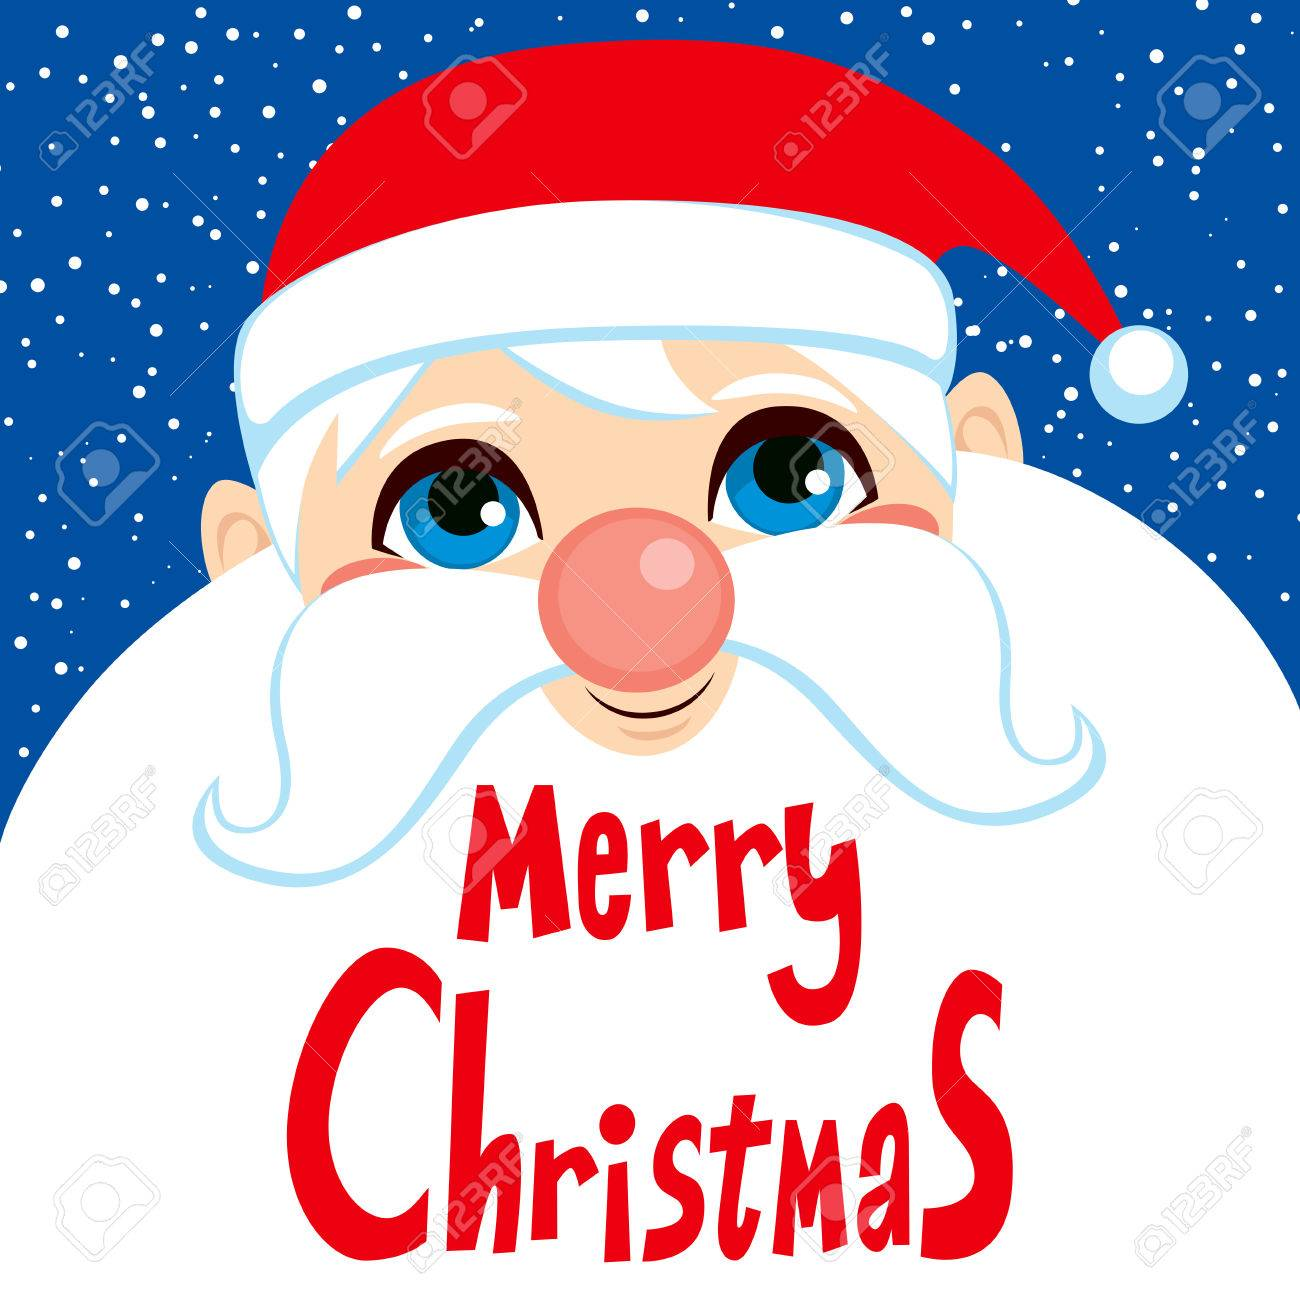 Cute Santa Claus Face Portrait With Merry Christmas Greetings